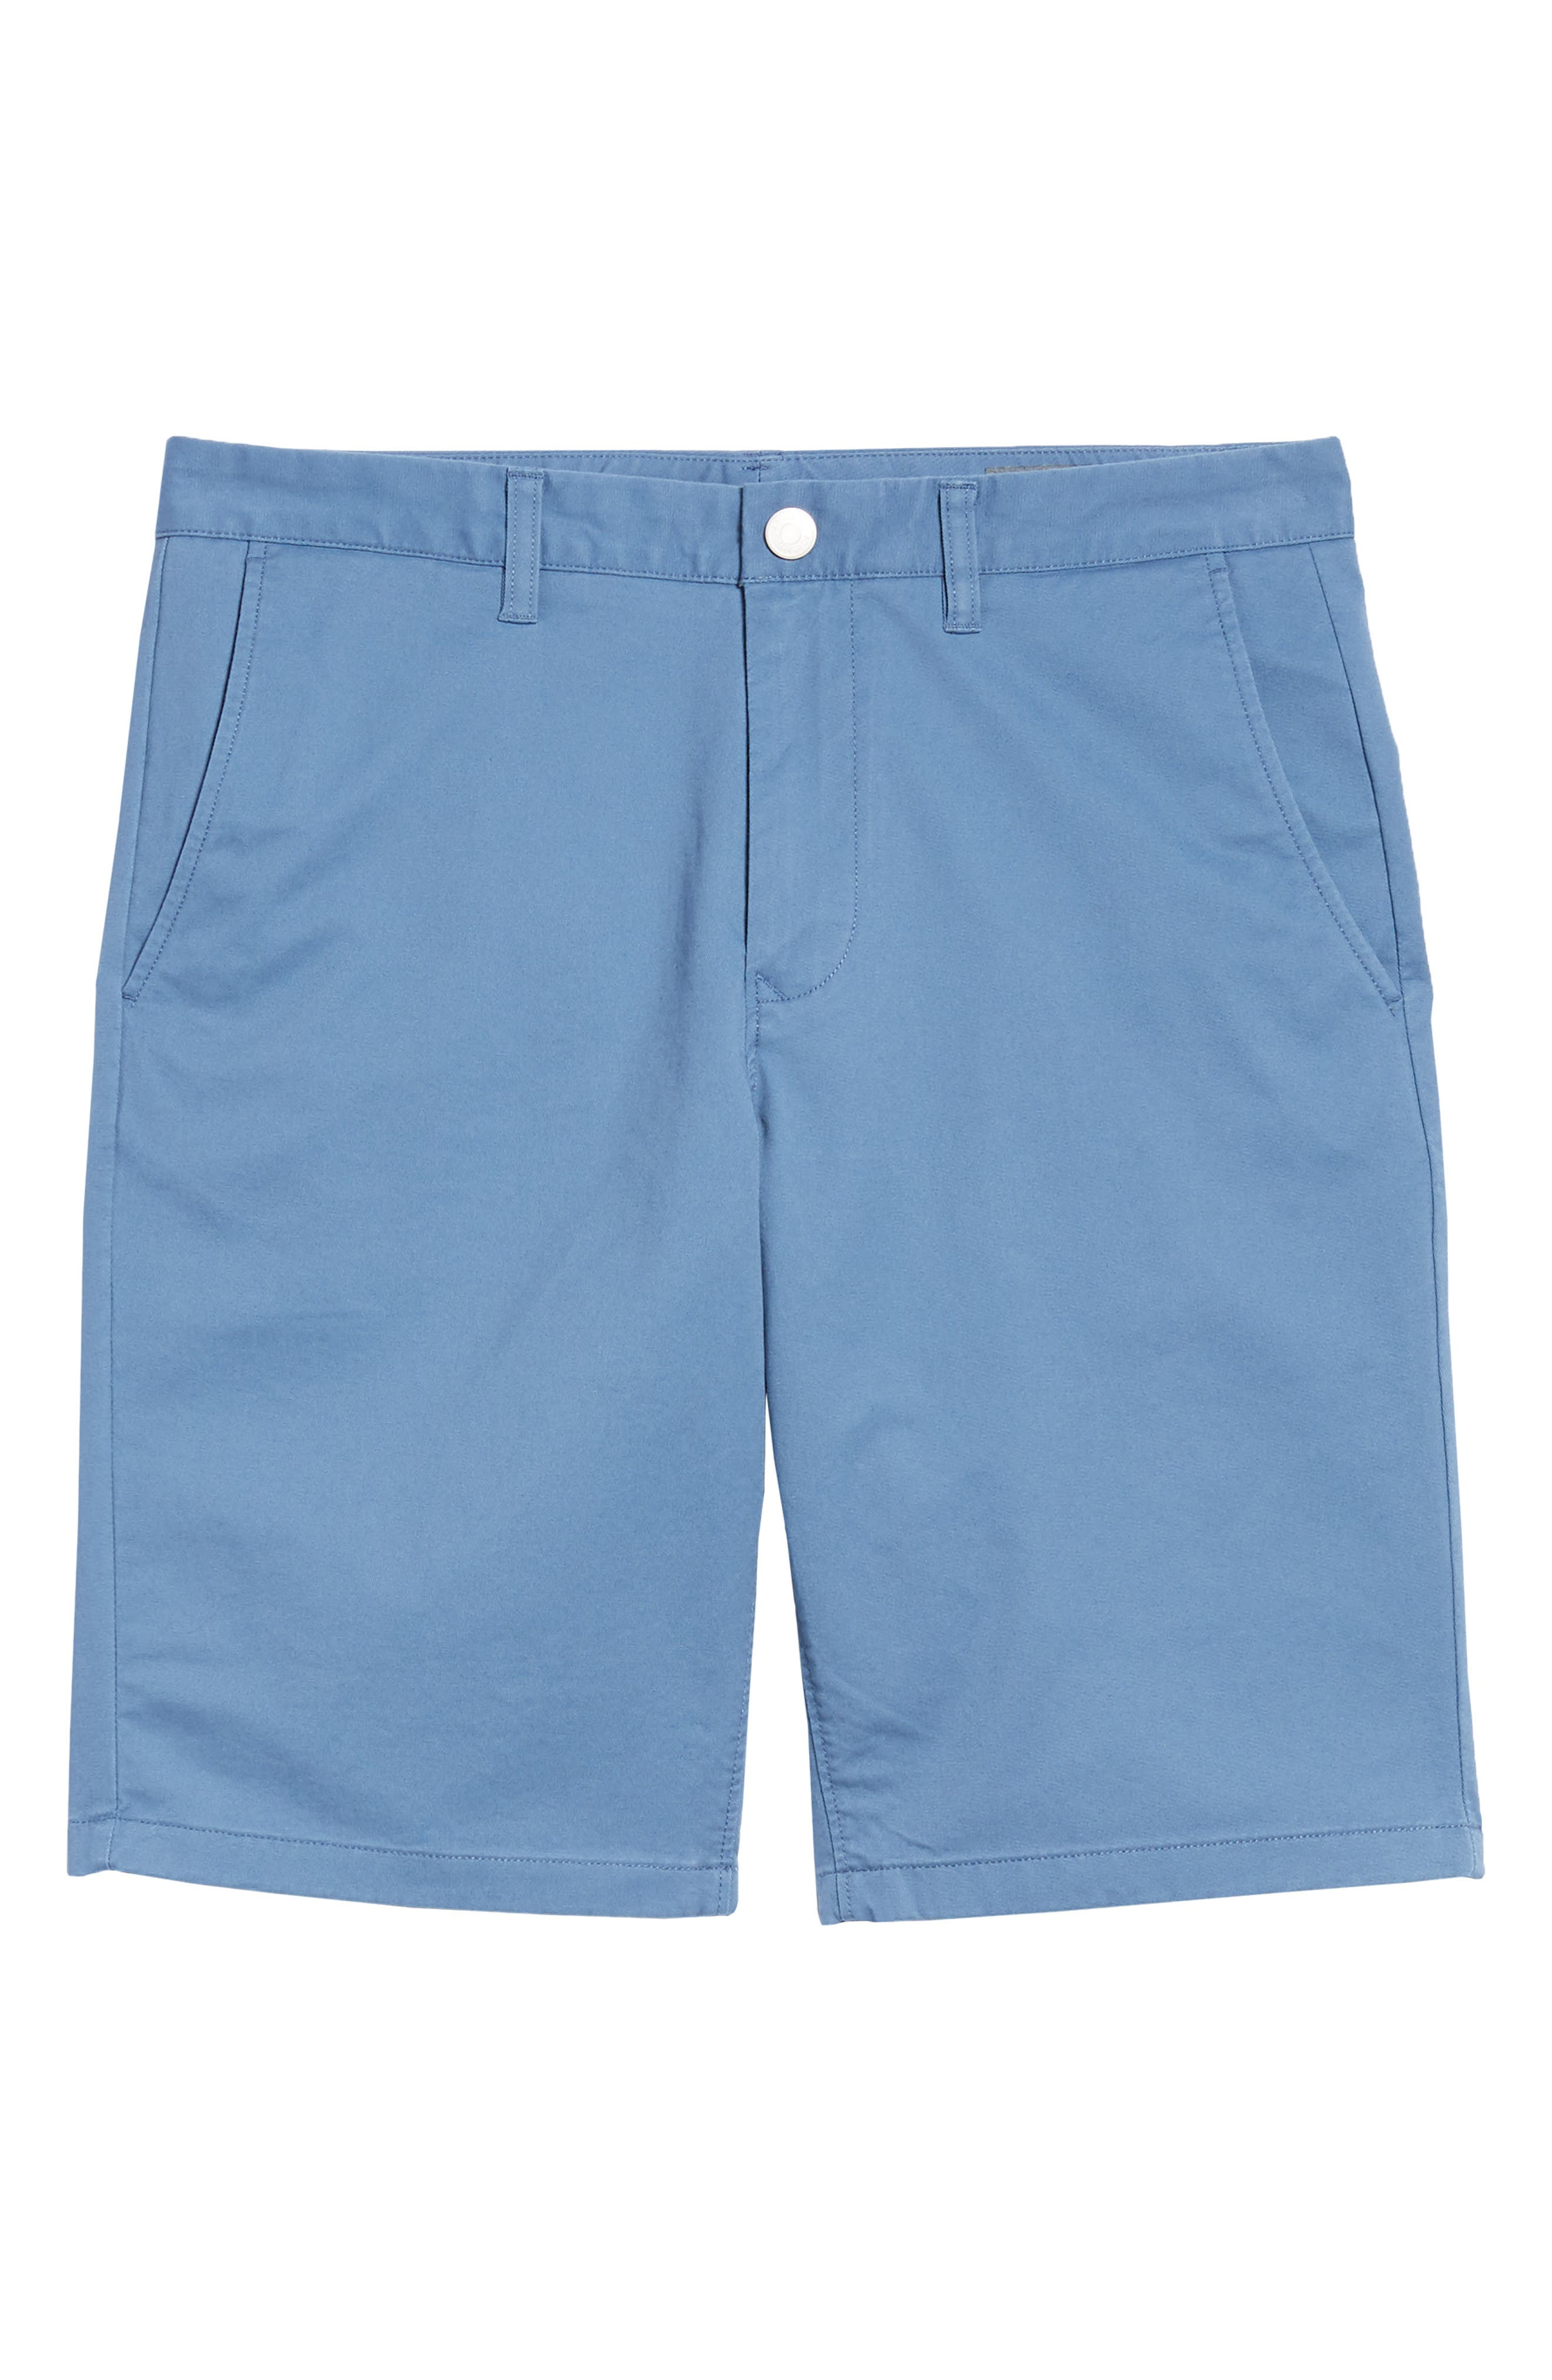 Stretch Washed Chino 11-Inch Shorts,                             Alternate thumbnail 114, color,